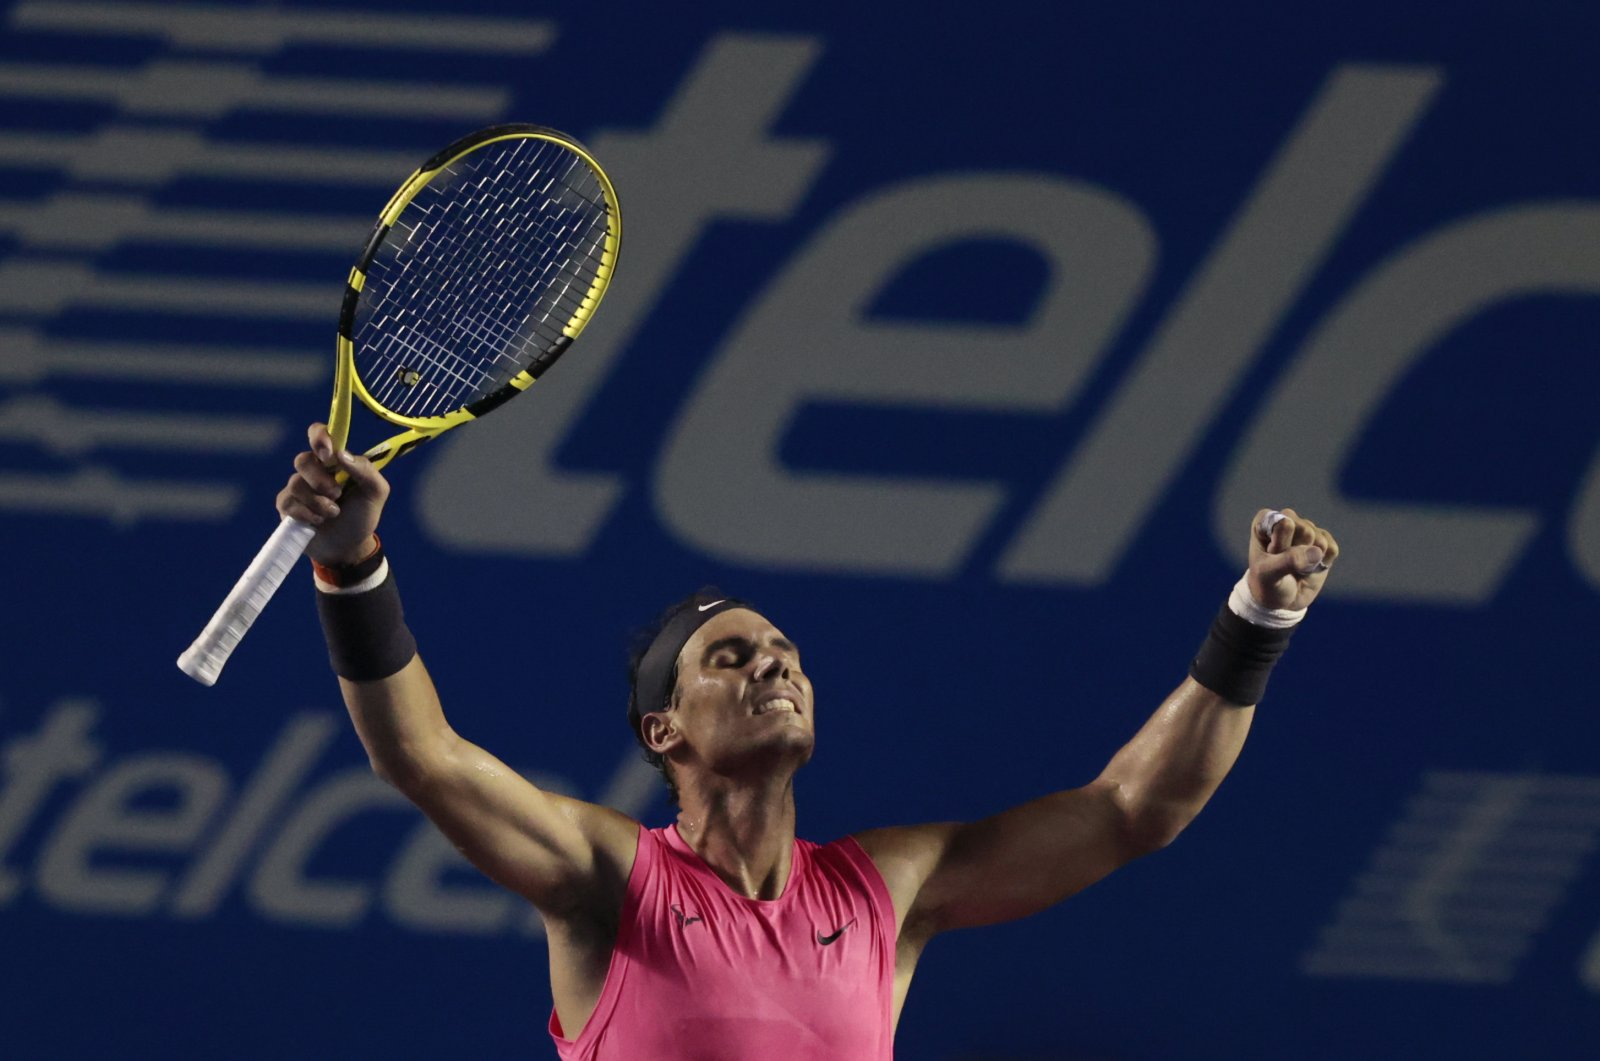 Rafael Nadal celebrates after defeating Grigor Dimitrov in the semifinals of the Mexican Open tennis tournament in Acapulco, Mexico, Feb. 28, 2020. (AP Photo)